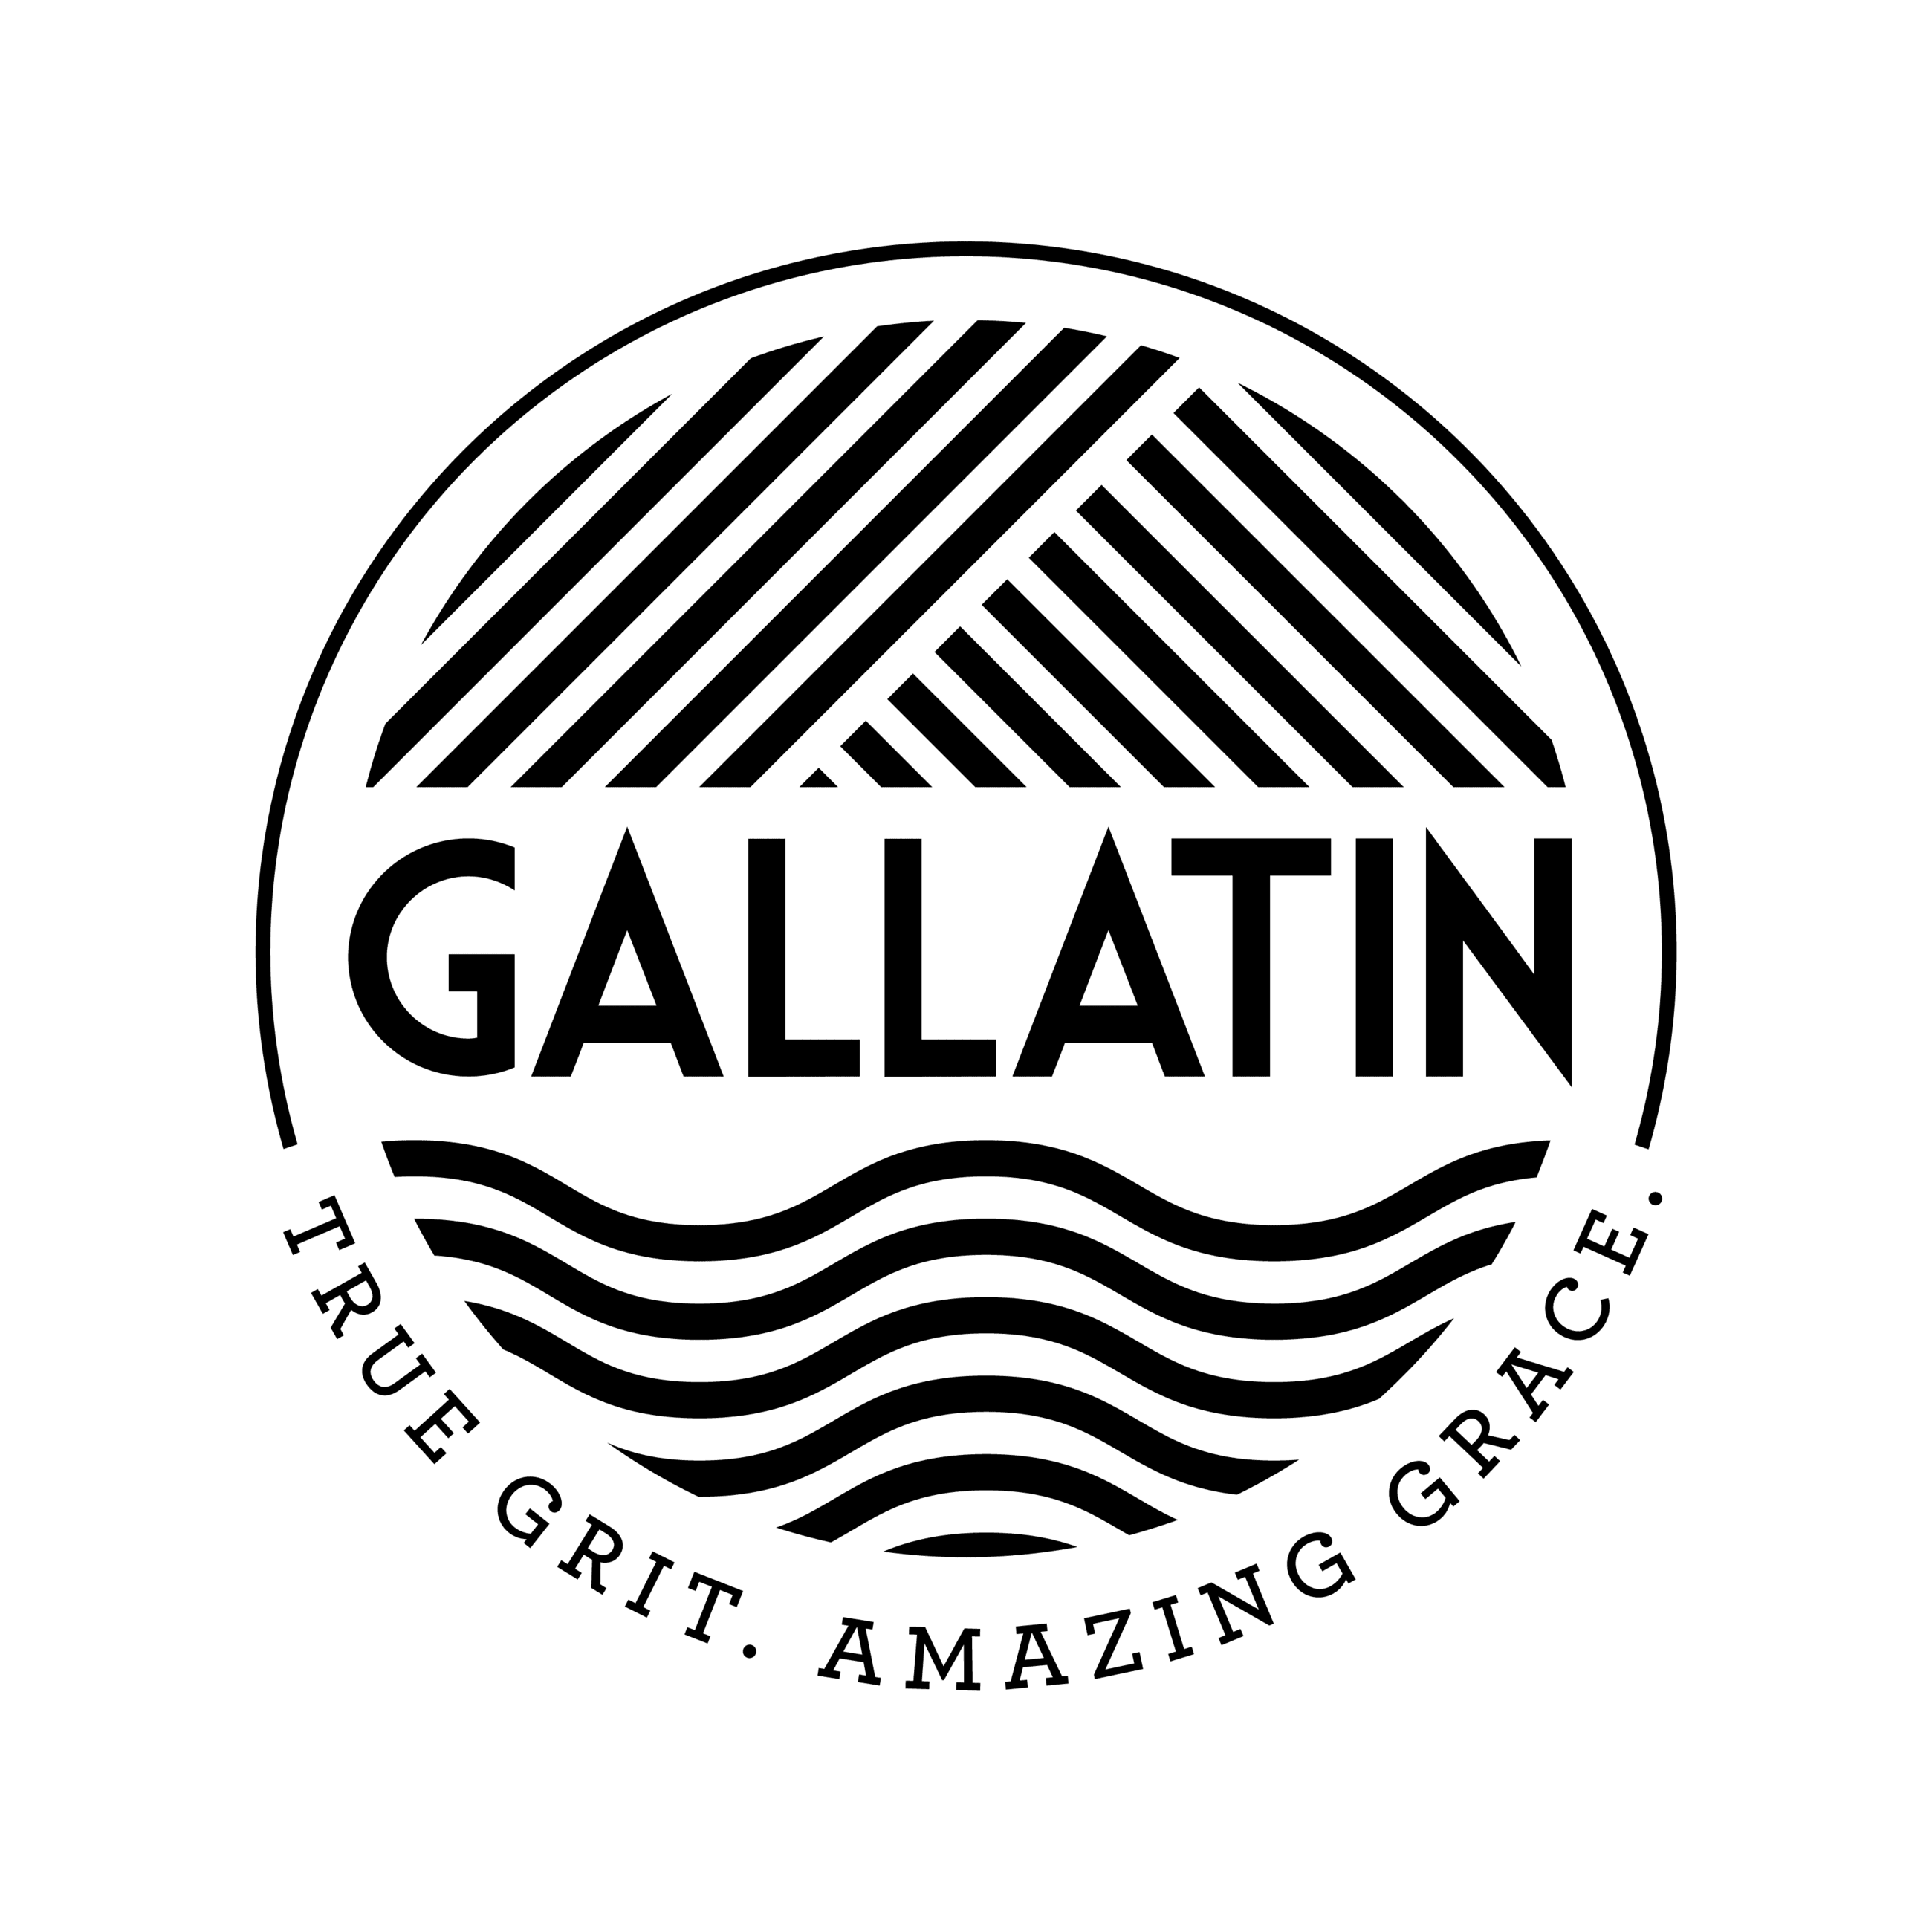 Gallatin Black and White Logo with Tagline